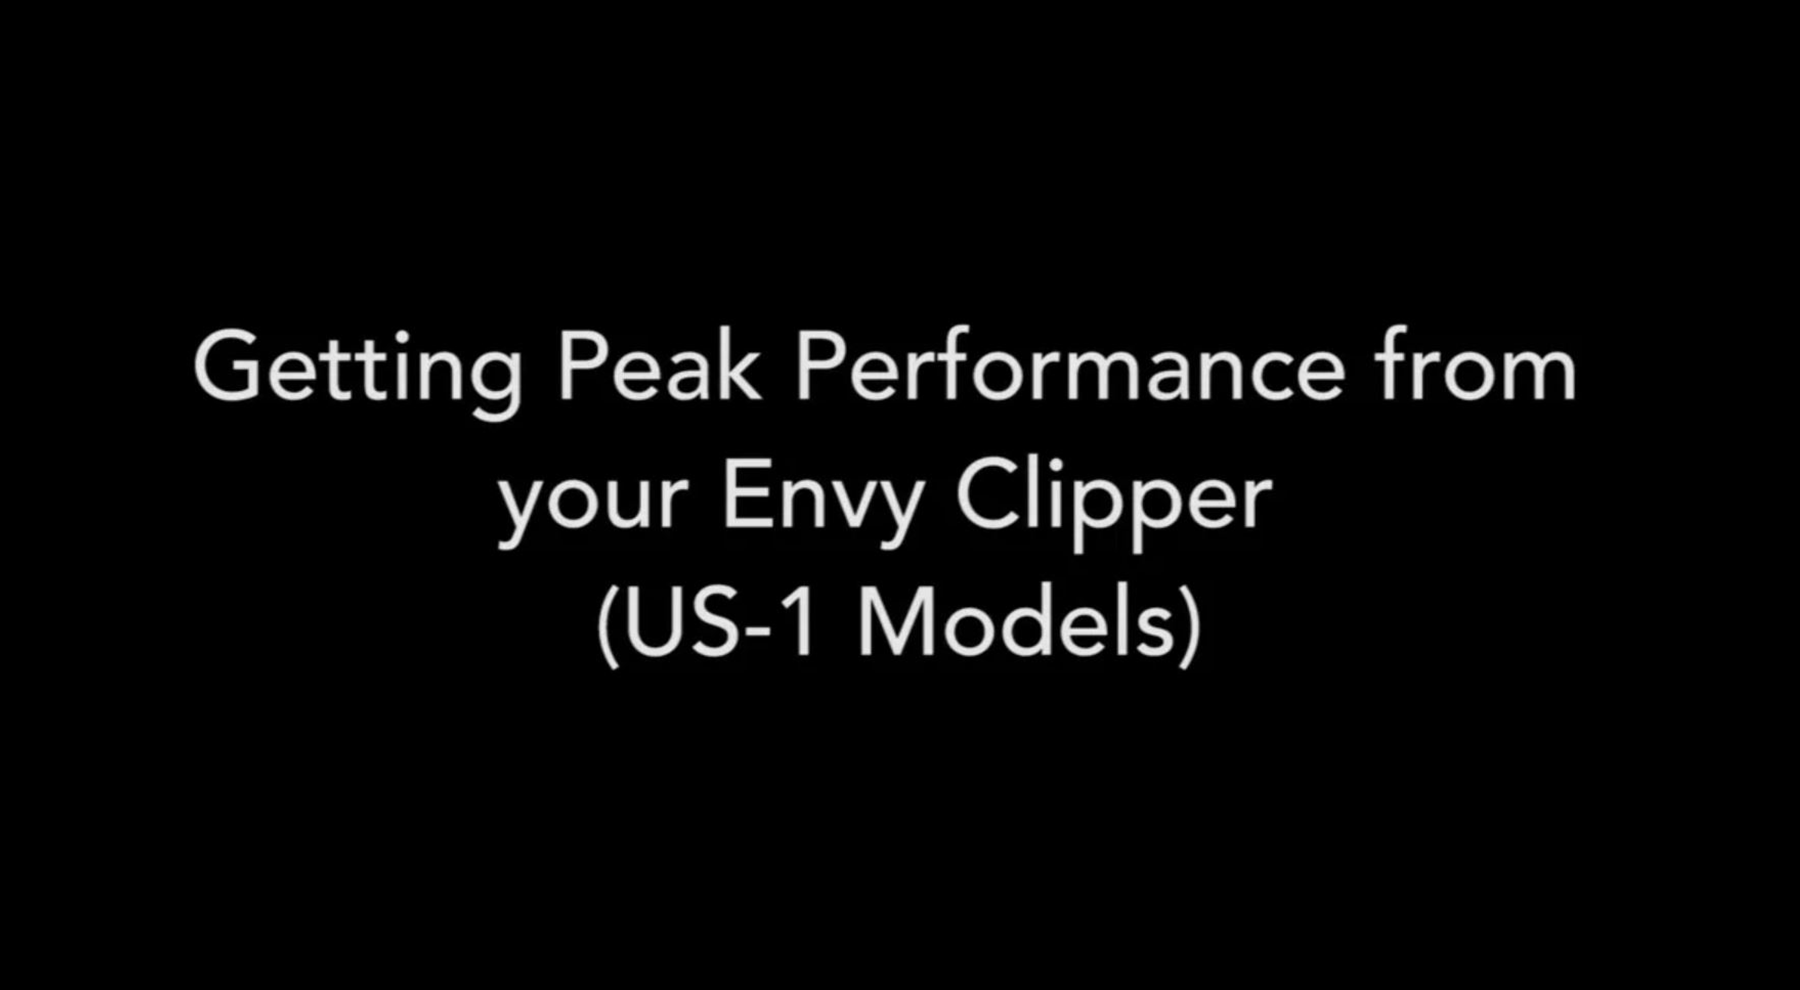 Getting Peak Performance from your Envy® Clipp